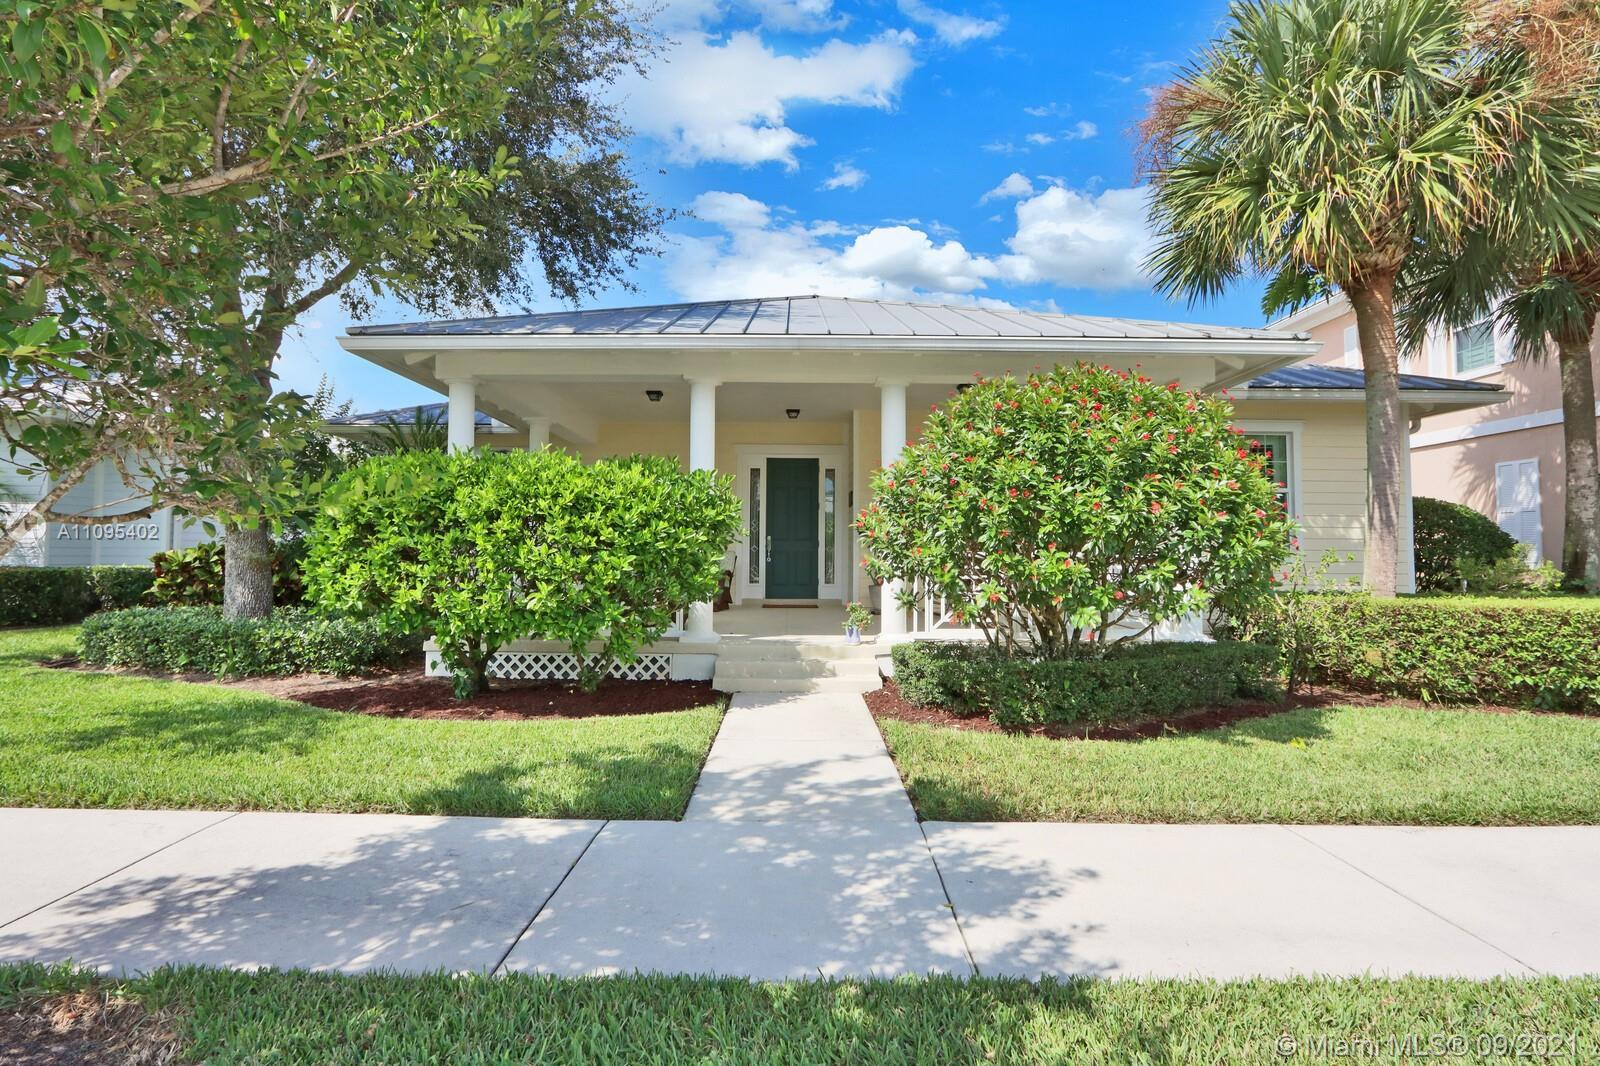 """One story home in Mallory Creek, Abacoa's """"Key West"""" style community. The Sandpiper is one of the mo"""